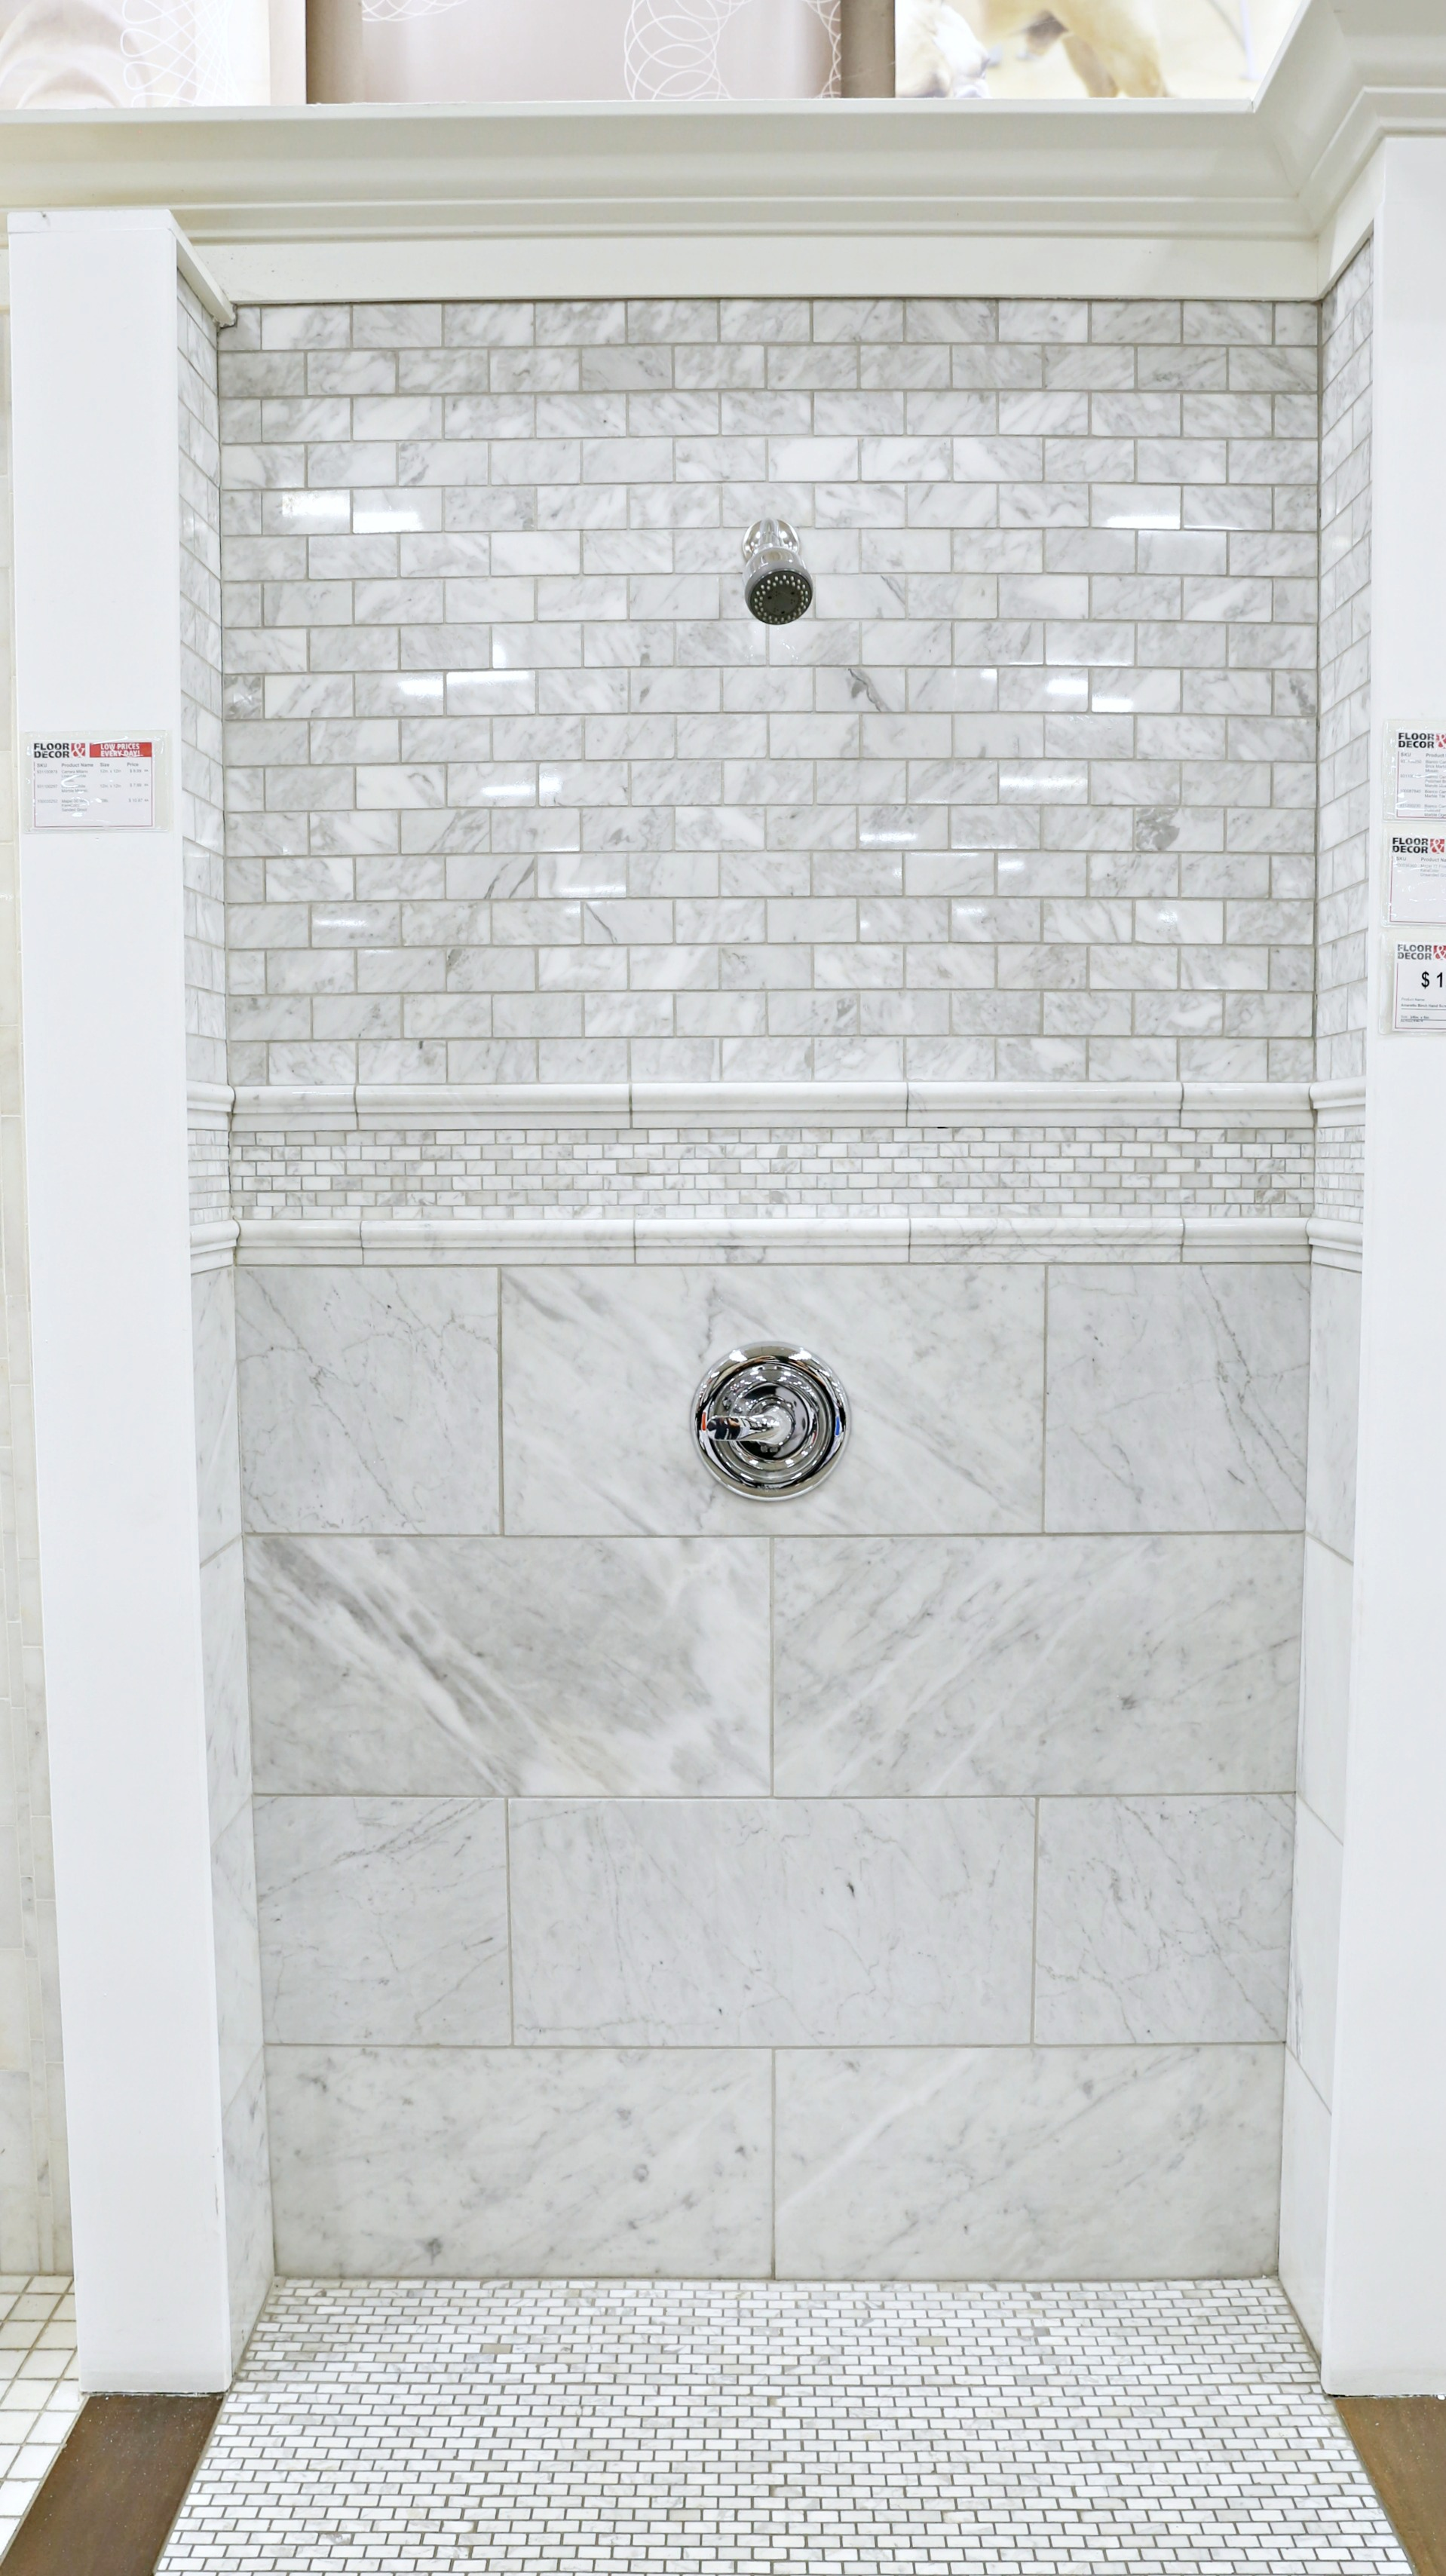 Amazing floor decor store tour classy clutter i was planning on doing a shower with one tile design on the wall and one tile design on the floor until i saw this display i love the variety and detail dailygadgetfo Image collections